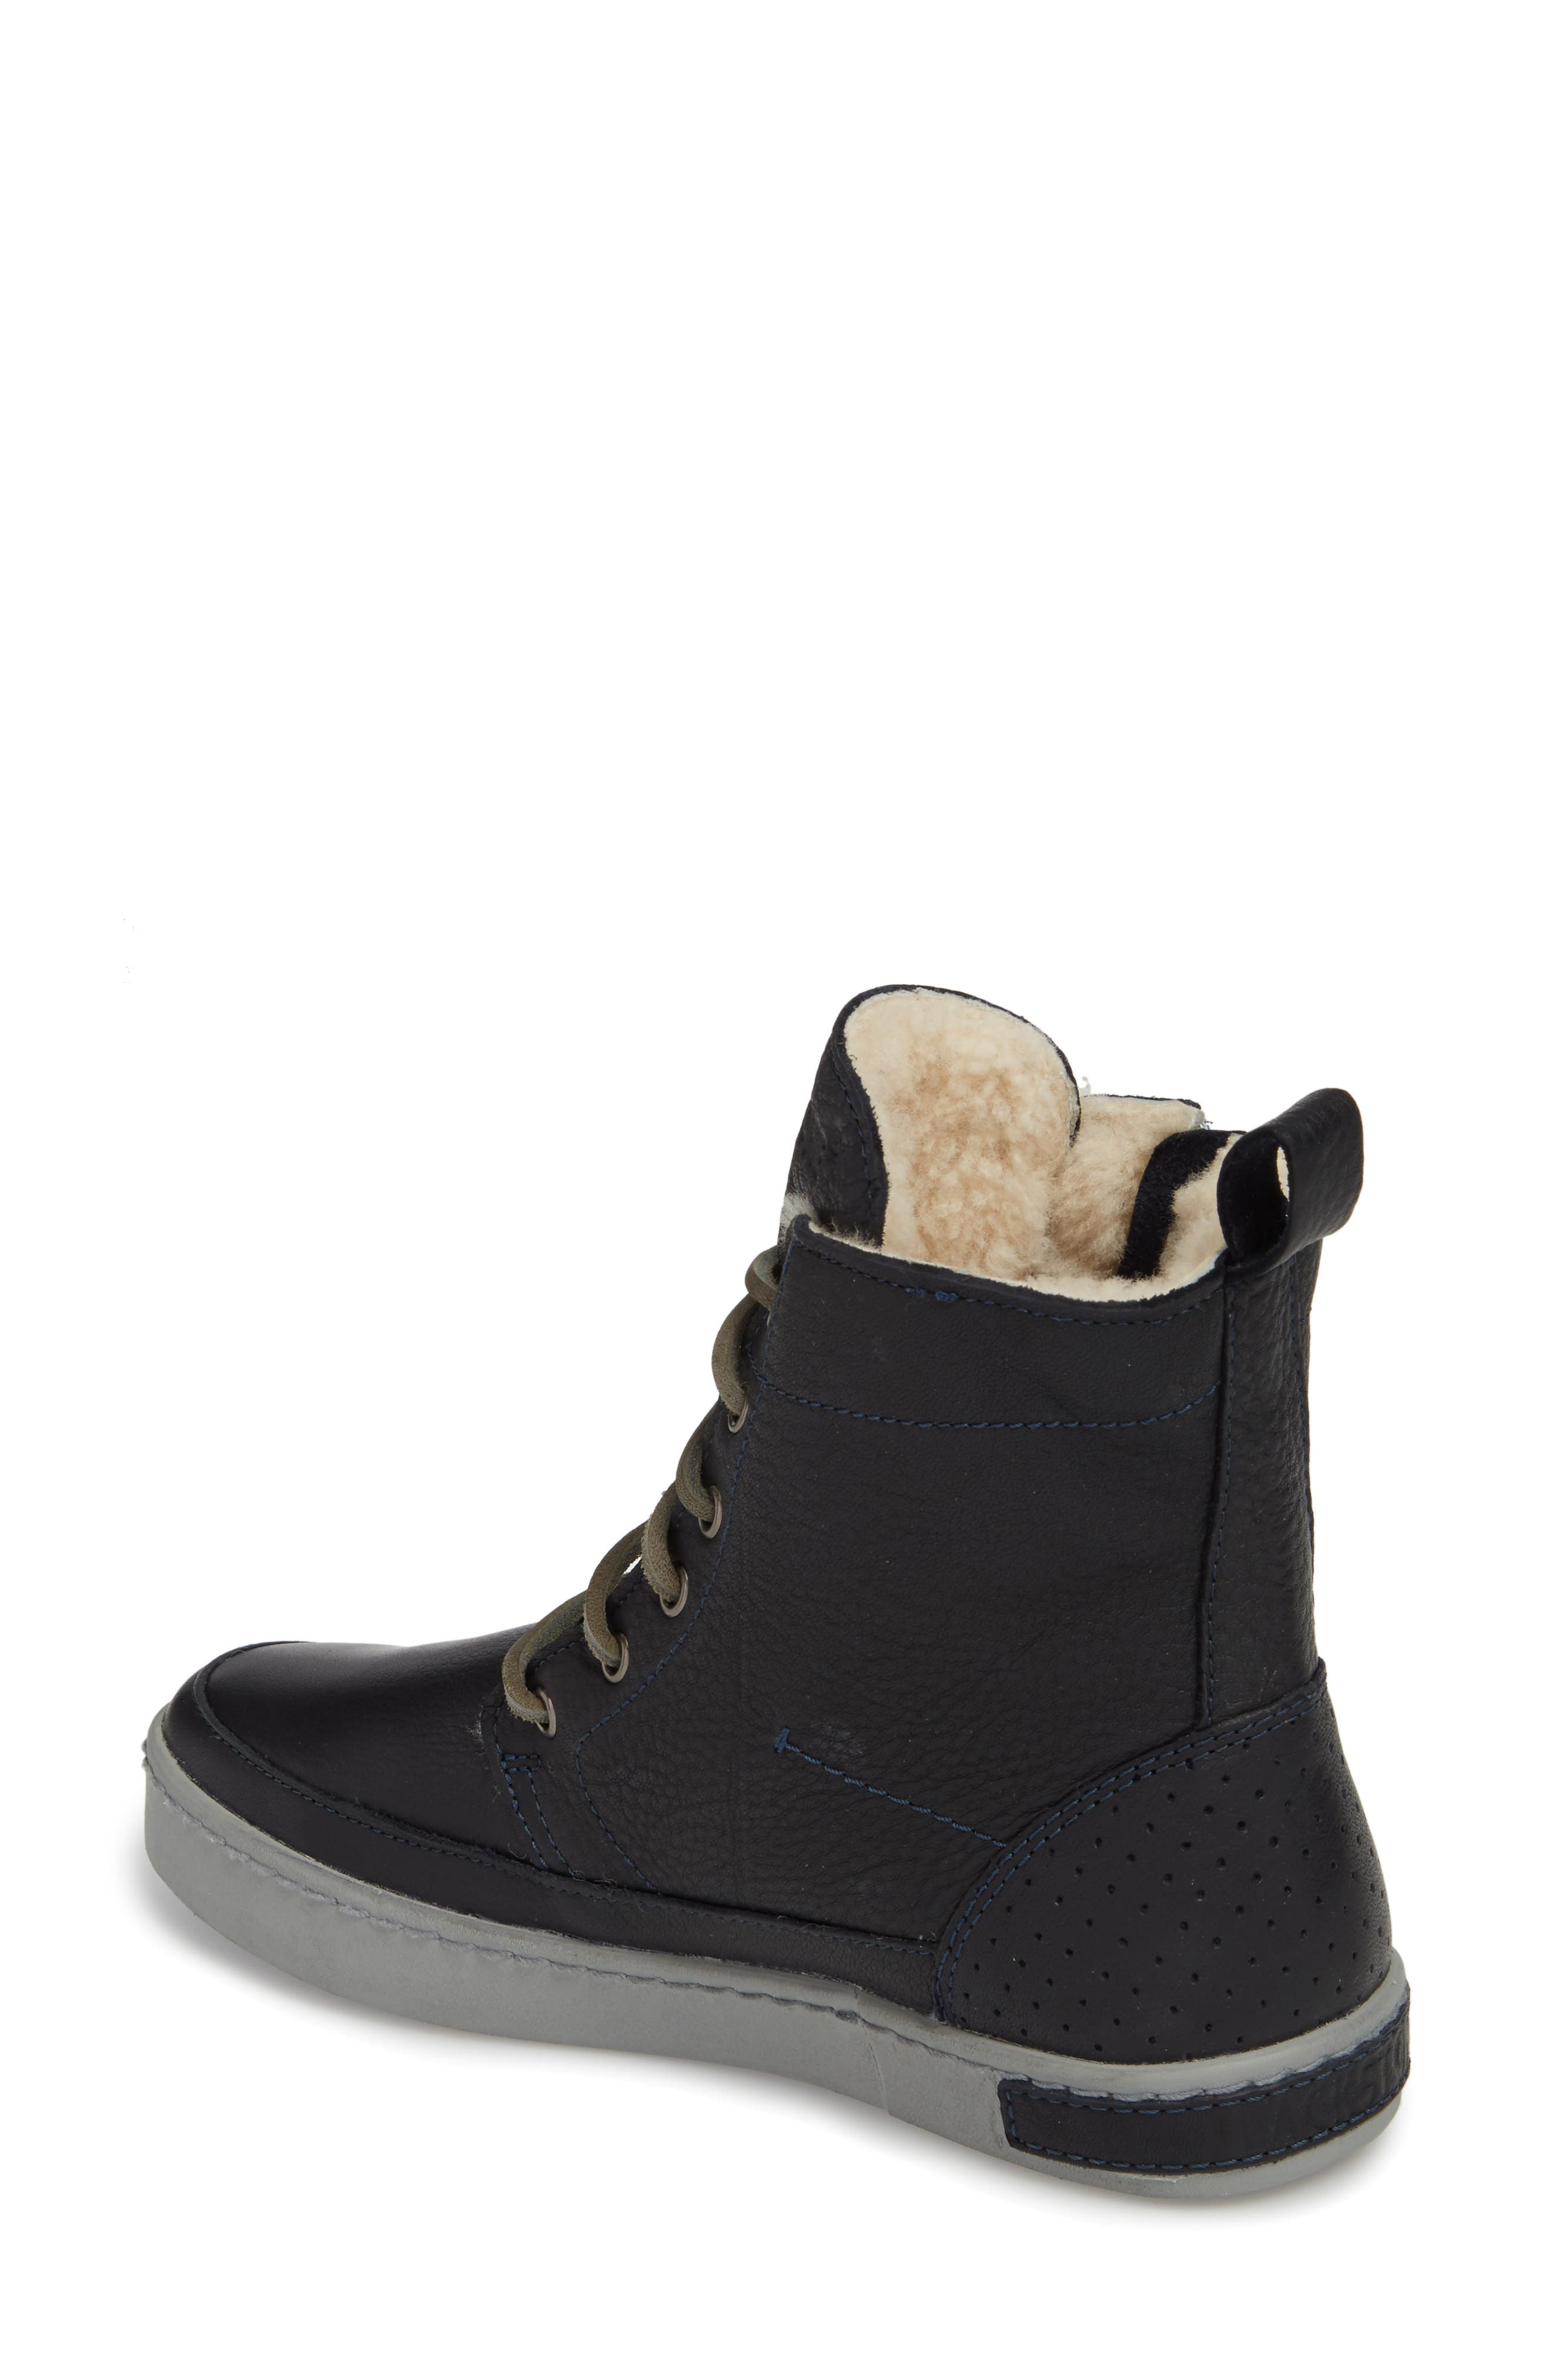 'CW96' Genuine Shearling Lined Sneaker Boot,                             Alternate thumbnail 2, color,                             Dark Indigo Leather